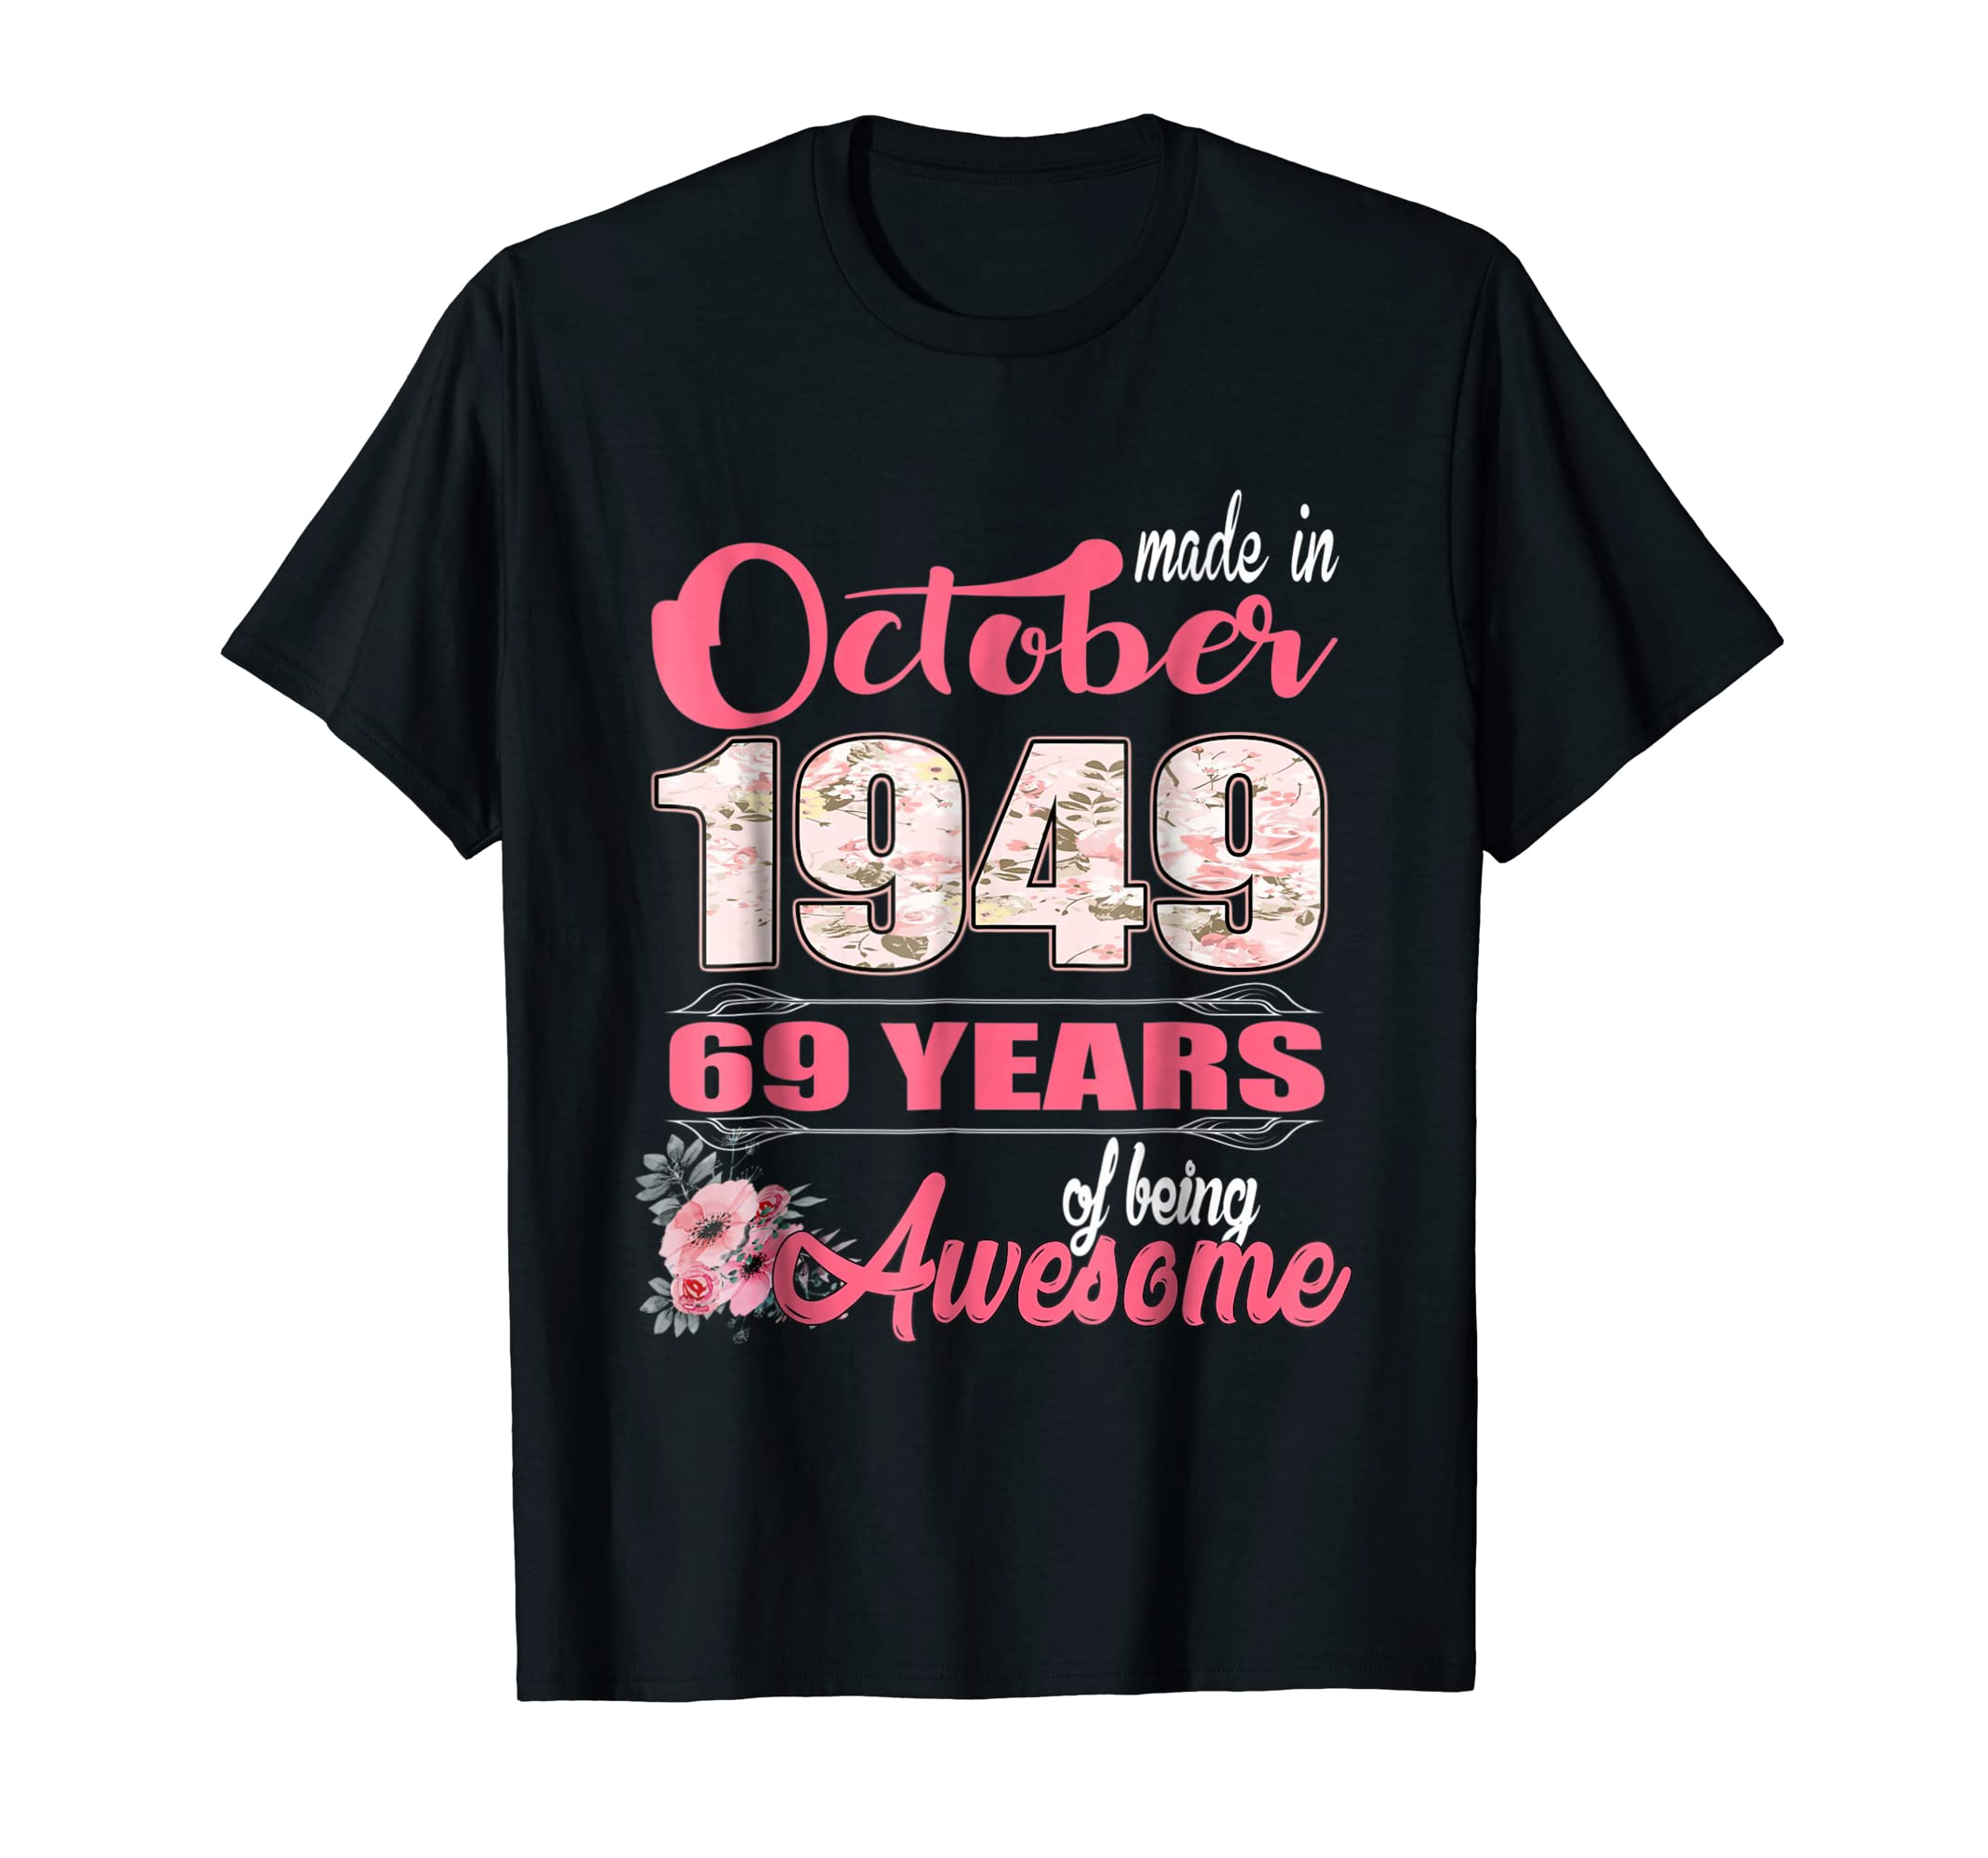 Womens Made in October 1949 Shirt 69 Years old birthday gift-ln